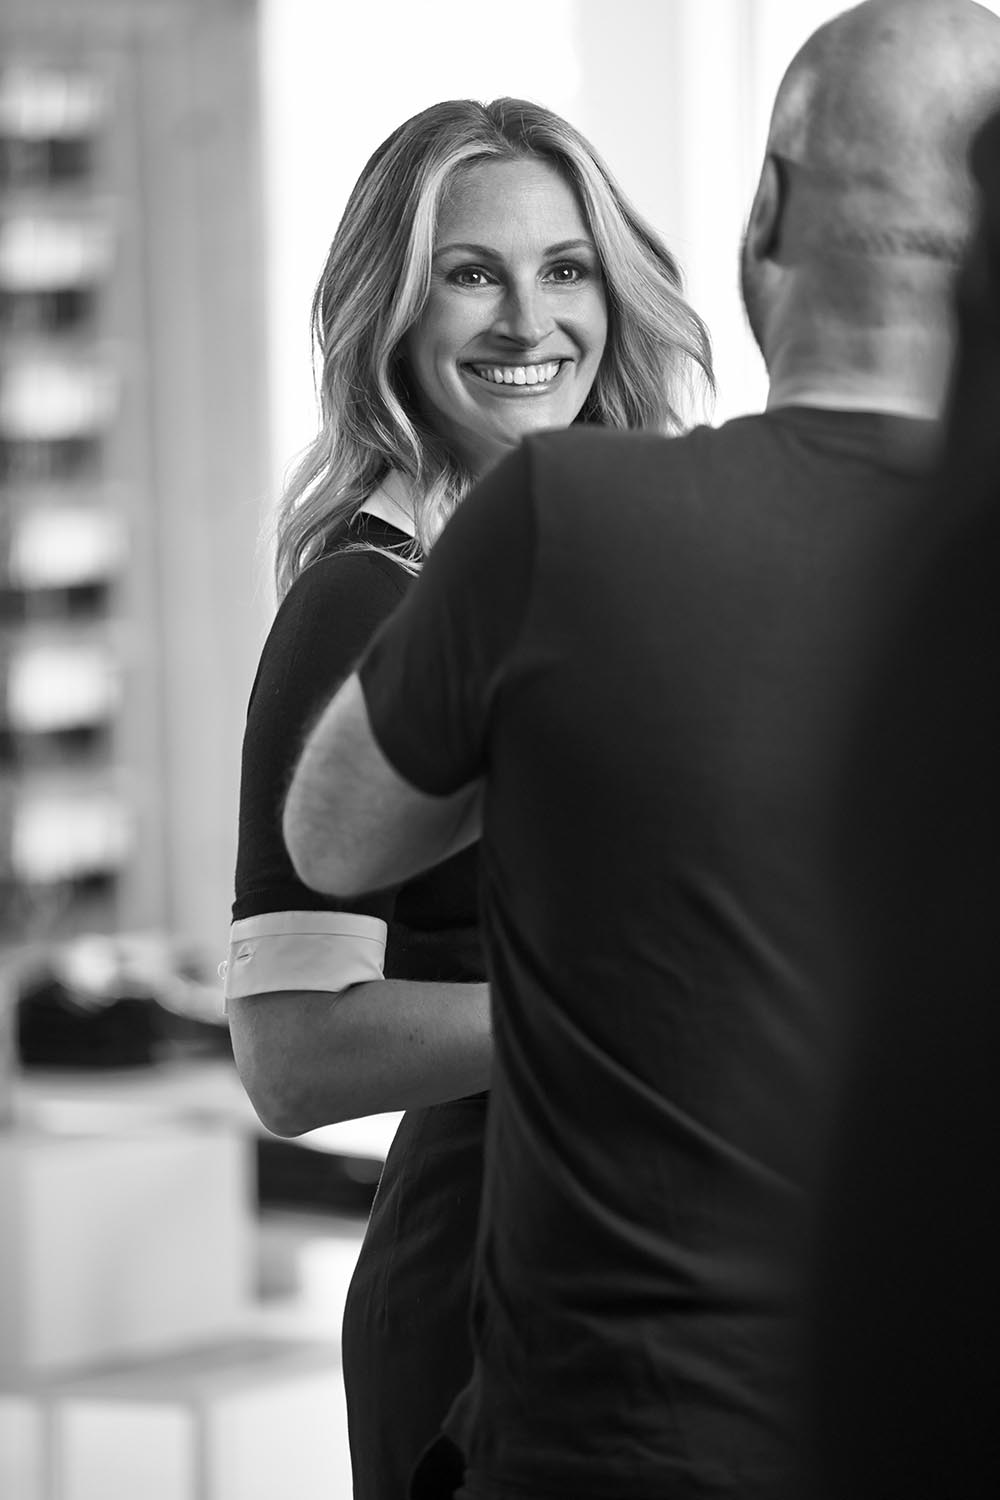 Calzedonia again chooses julia roberts as brand ambassador